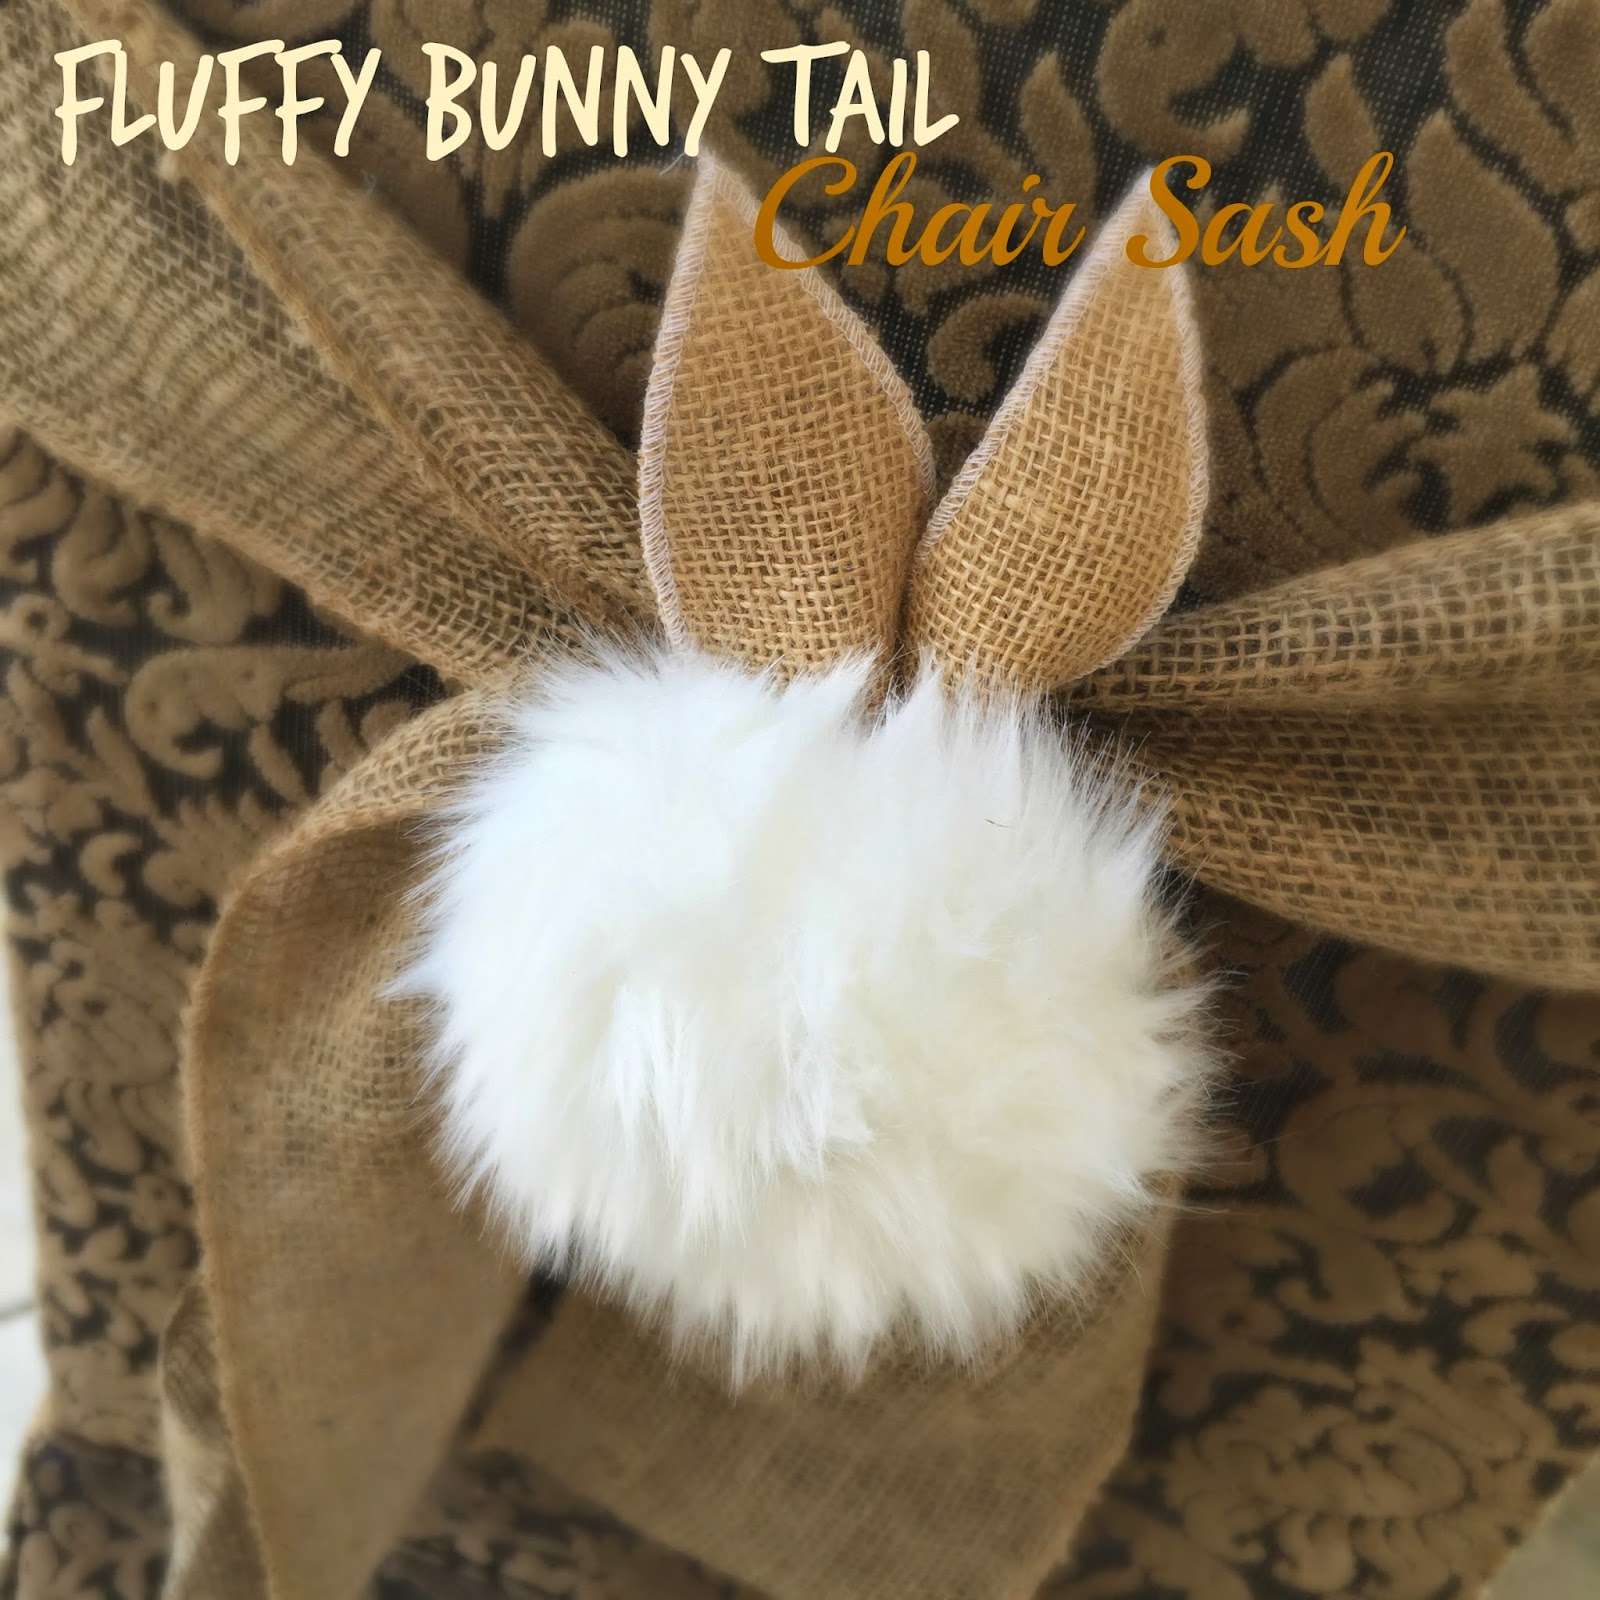 ruffle chair sashes outdoor swing chairs fluffy bunny tail sash tutorial | purple chocolat home bloglovin'